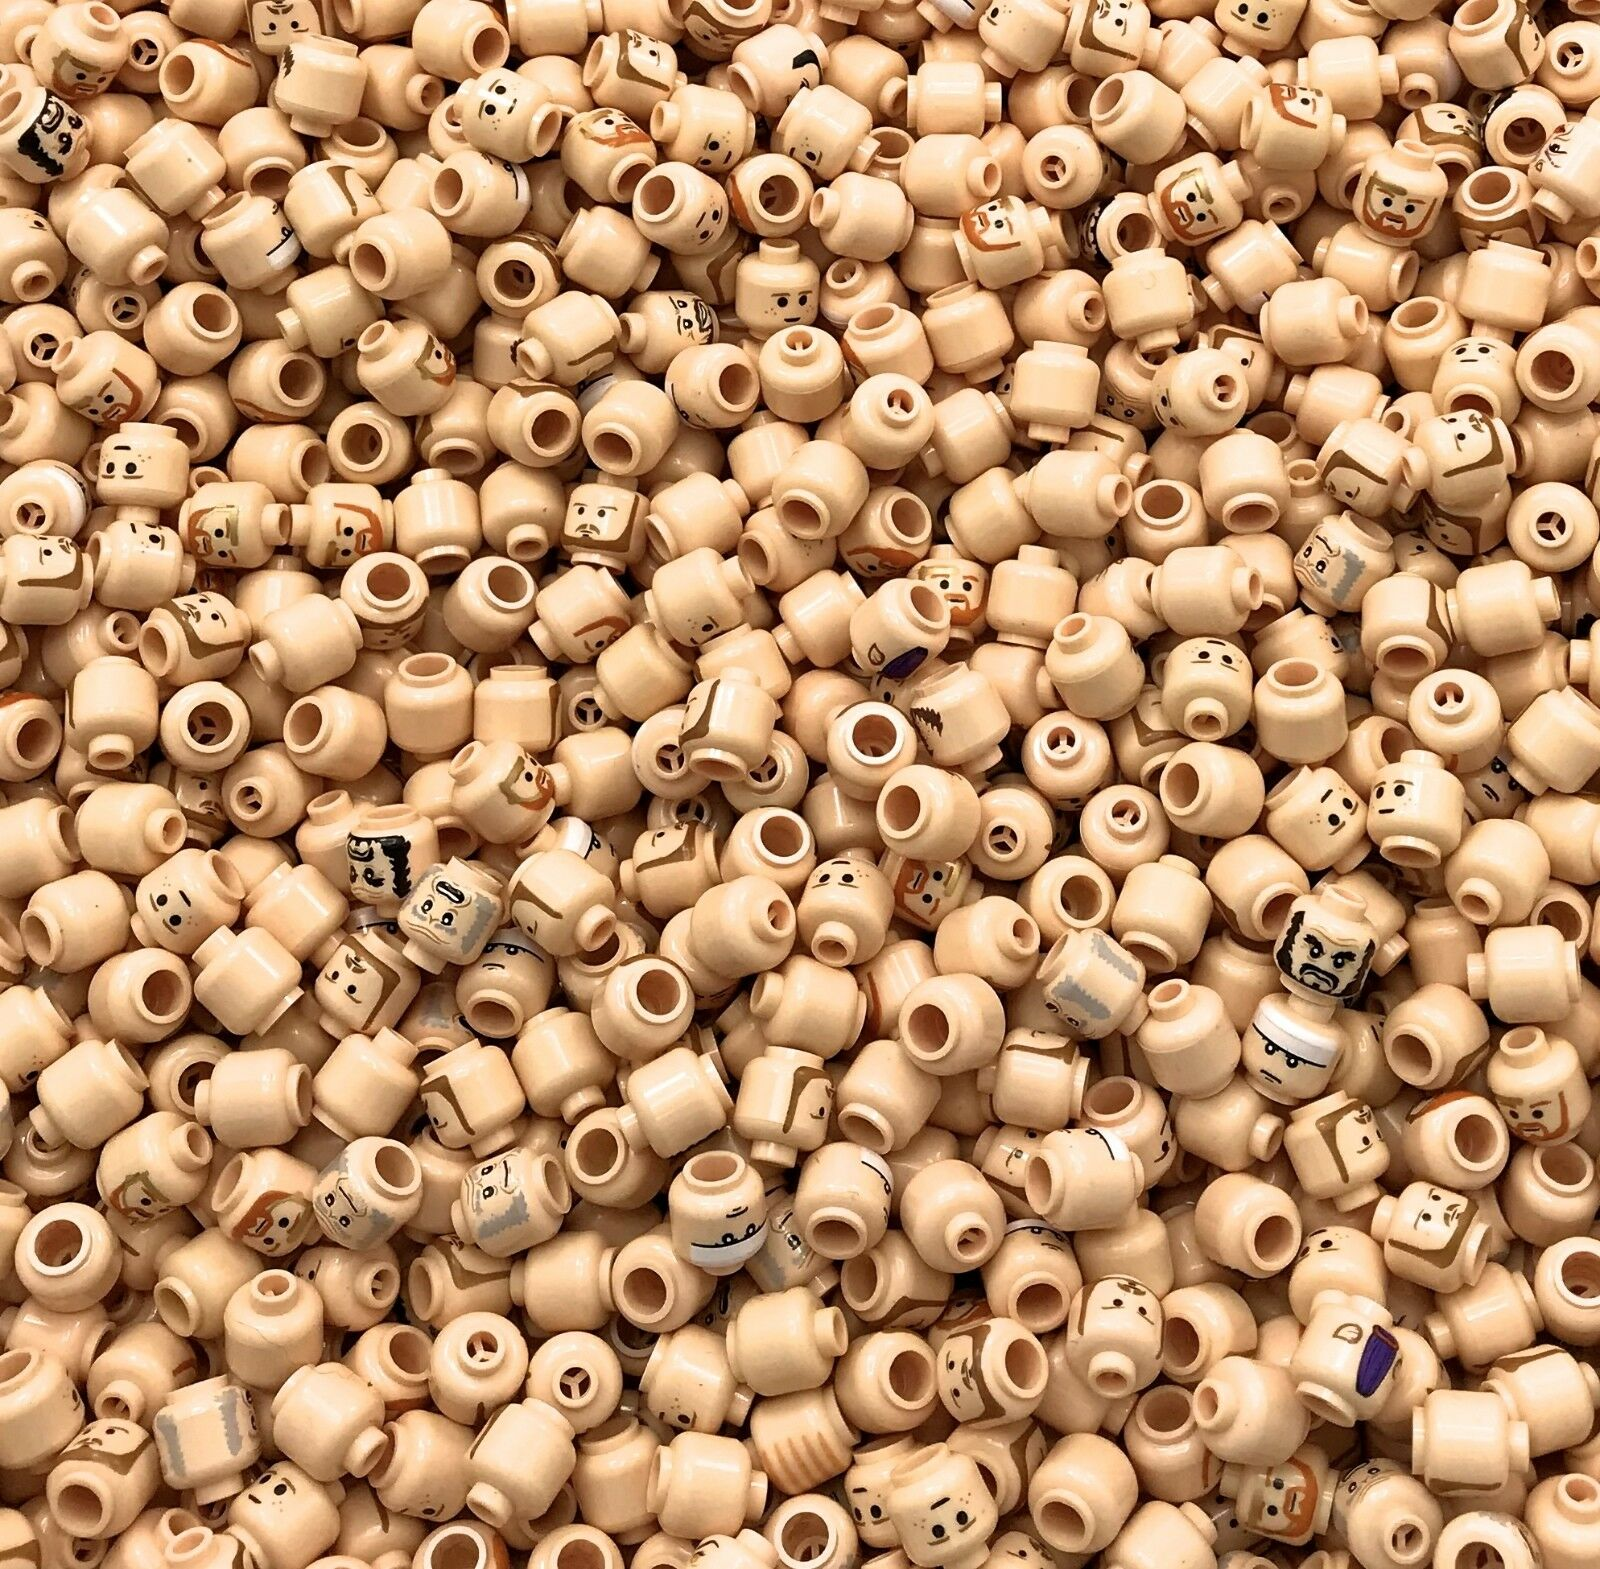 LEGO LOT OF 100 NEW FLESH COLOrosso MINIFIGURE MINIFIG HEADS STAR WARS MORE